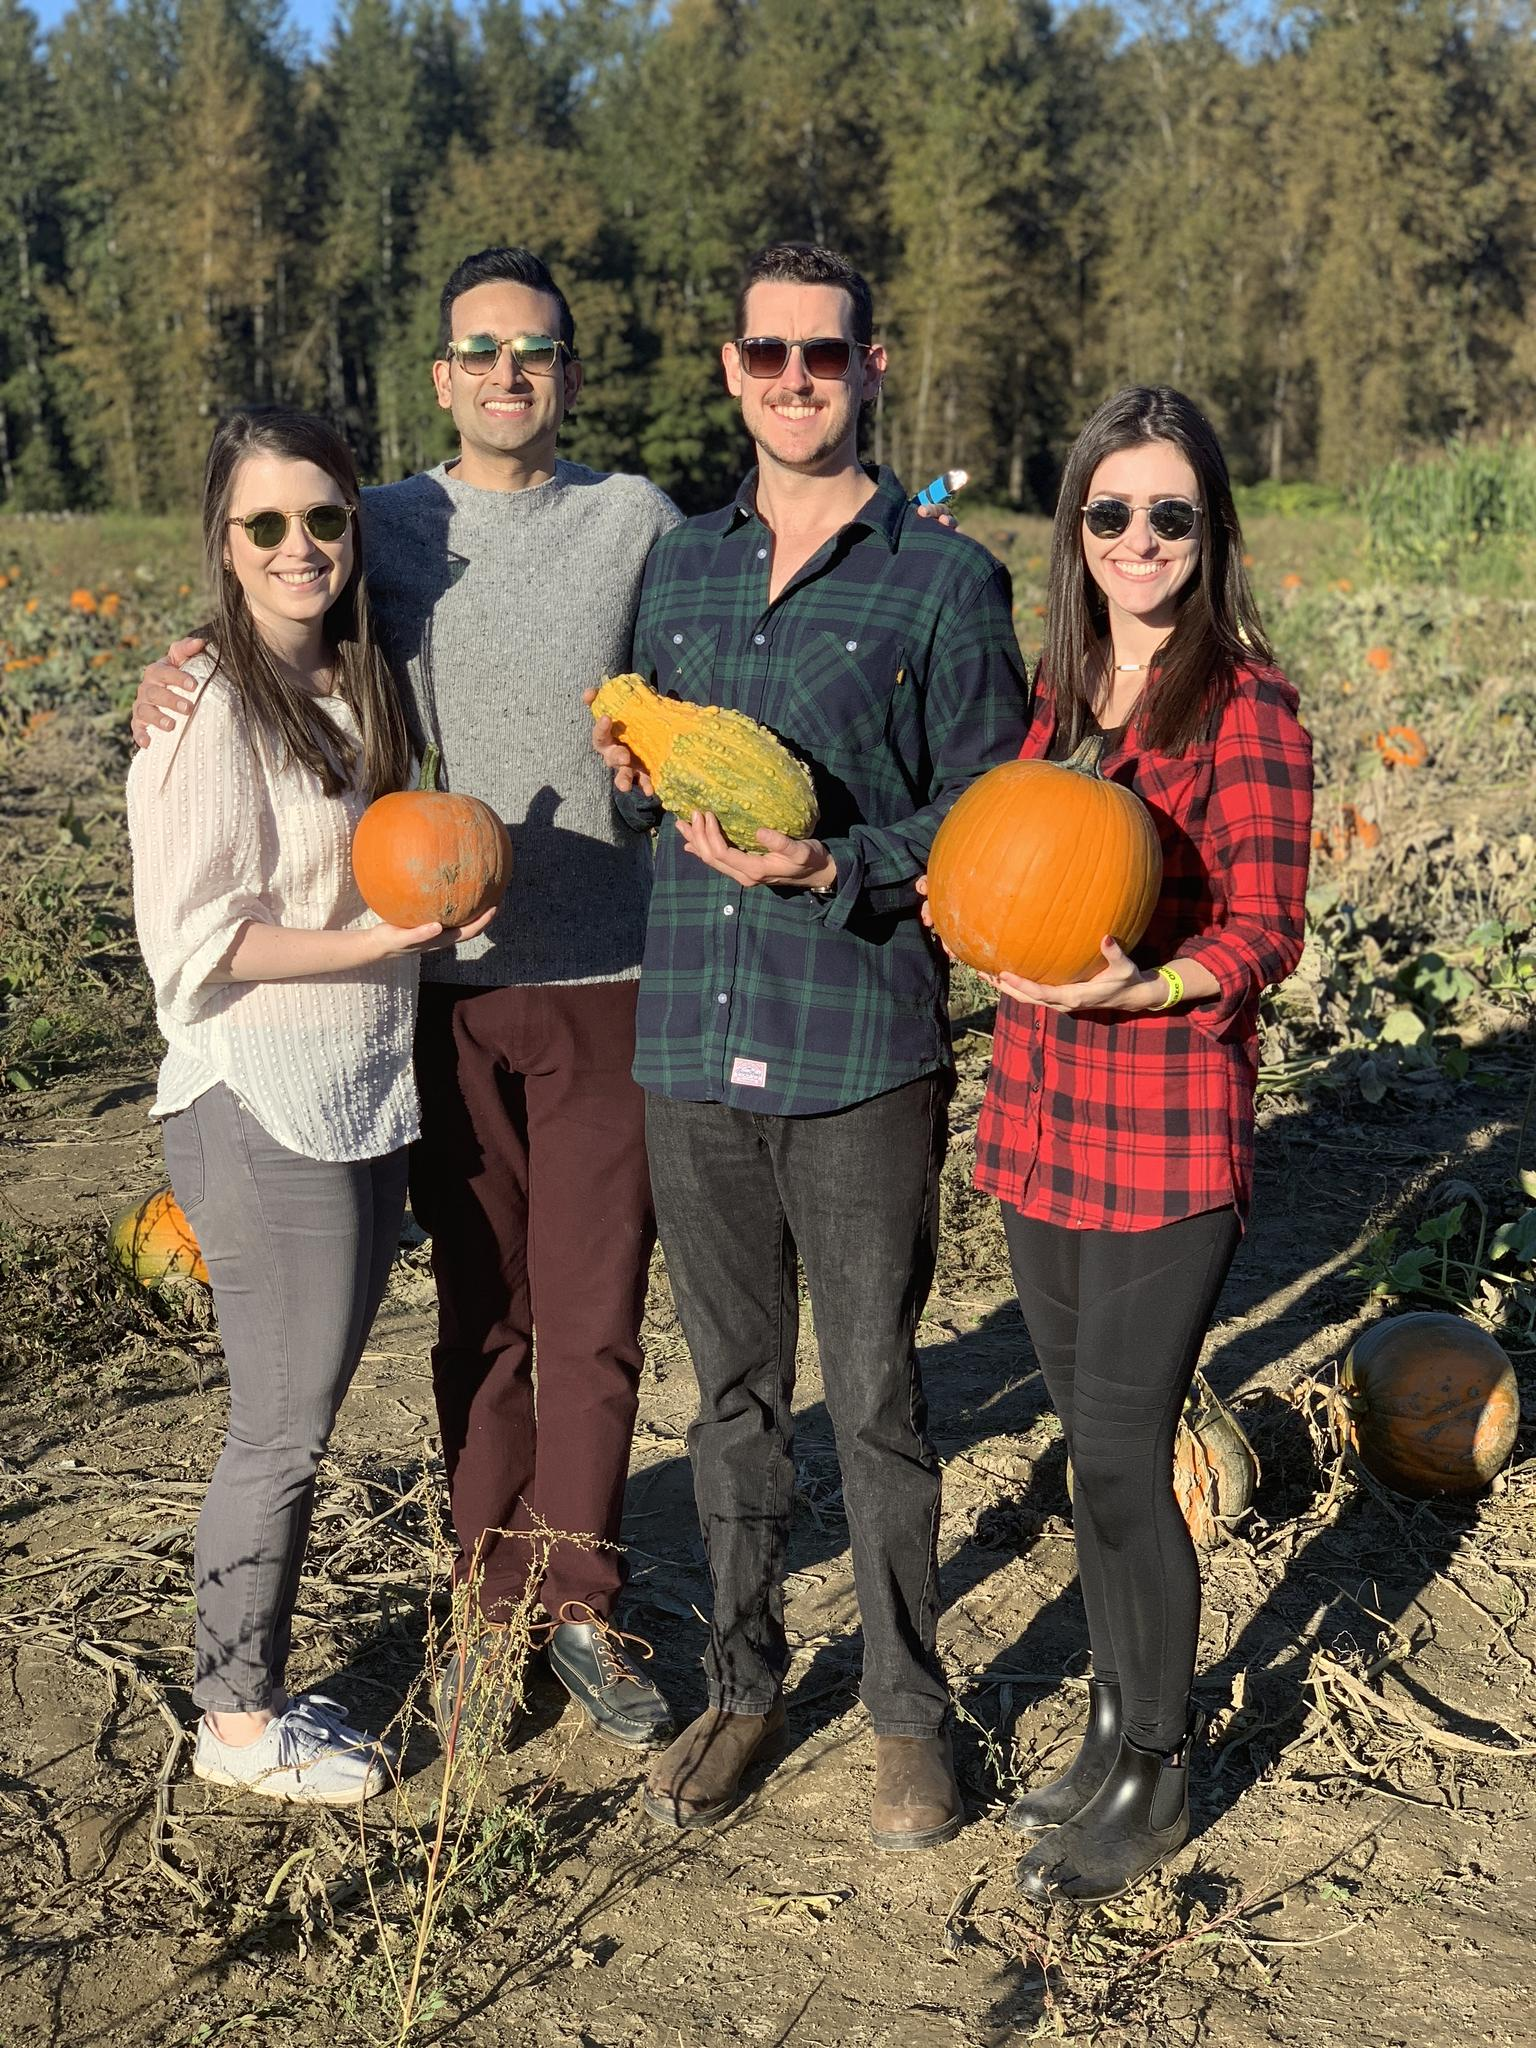 Our friends Jessica and Wilson moved up to Seattle just in time for a pumpkin patch adventure!